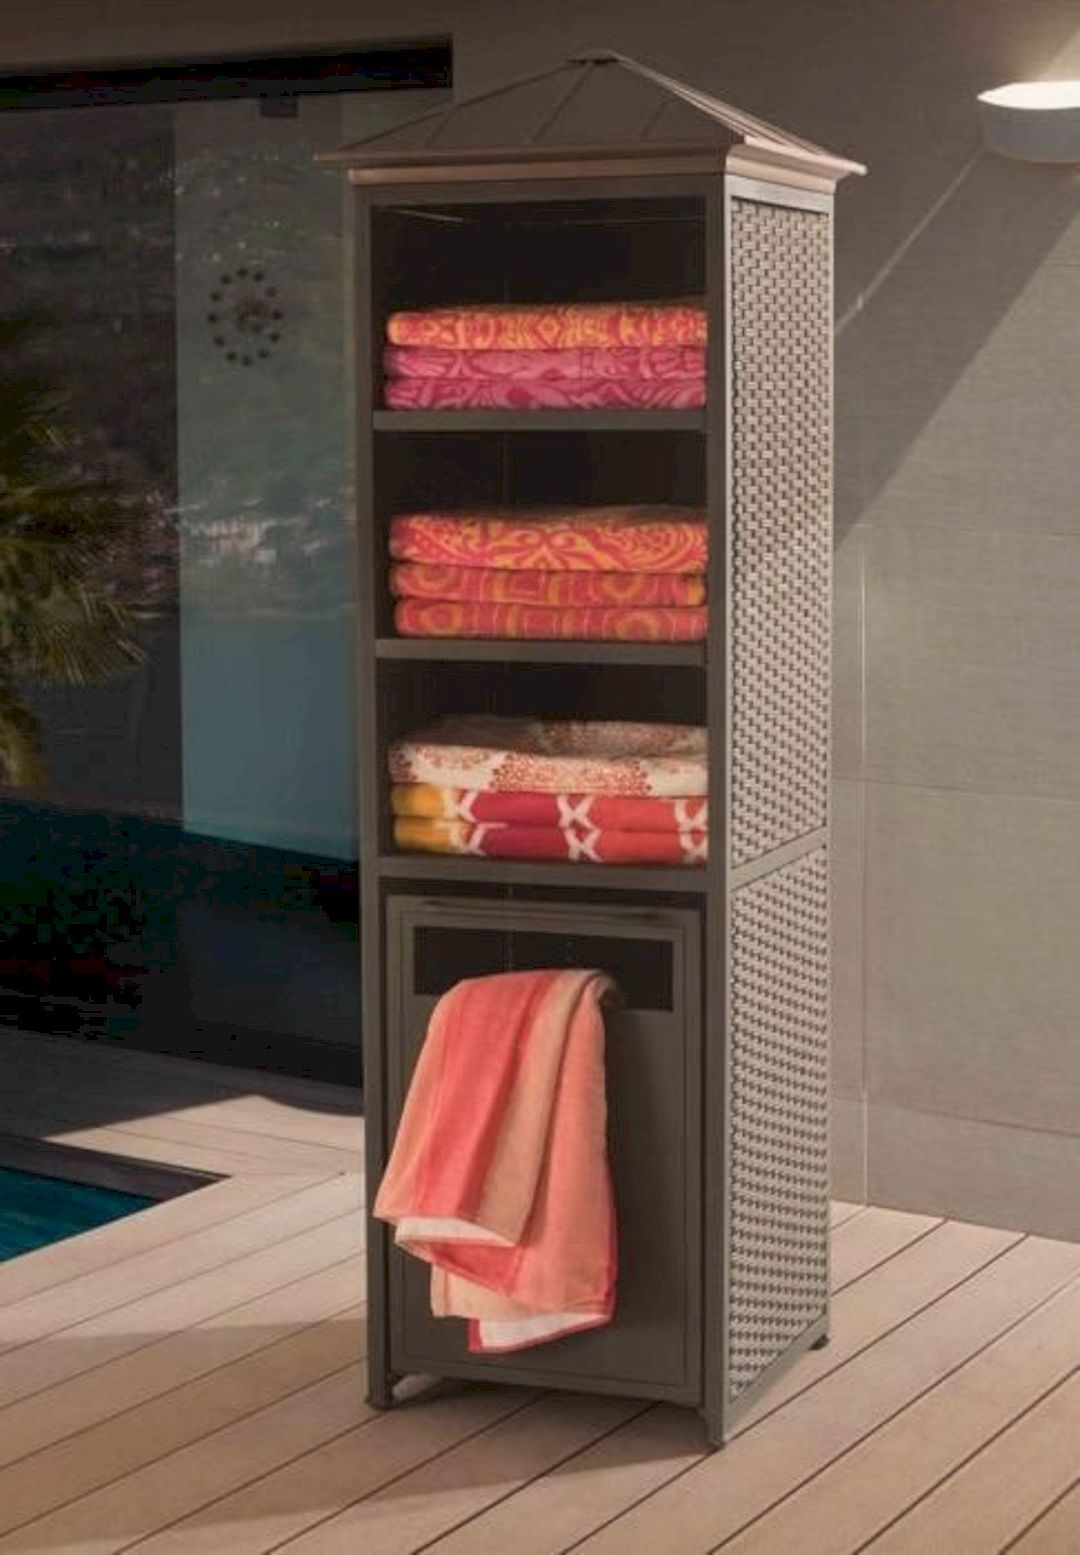 16 Awesome Pool Furniture Ideas With Images Pool Towel Storage Pool Decor Pool Towels